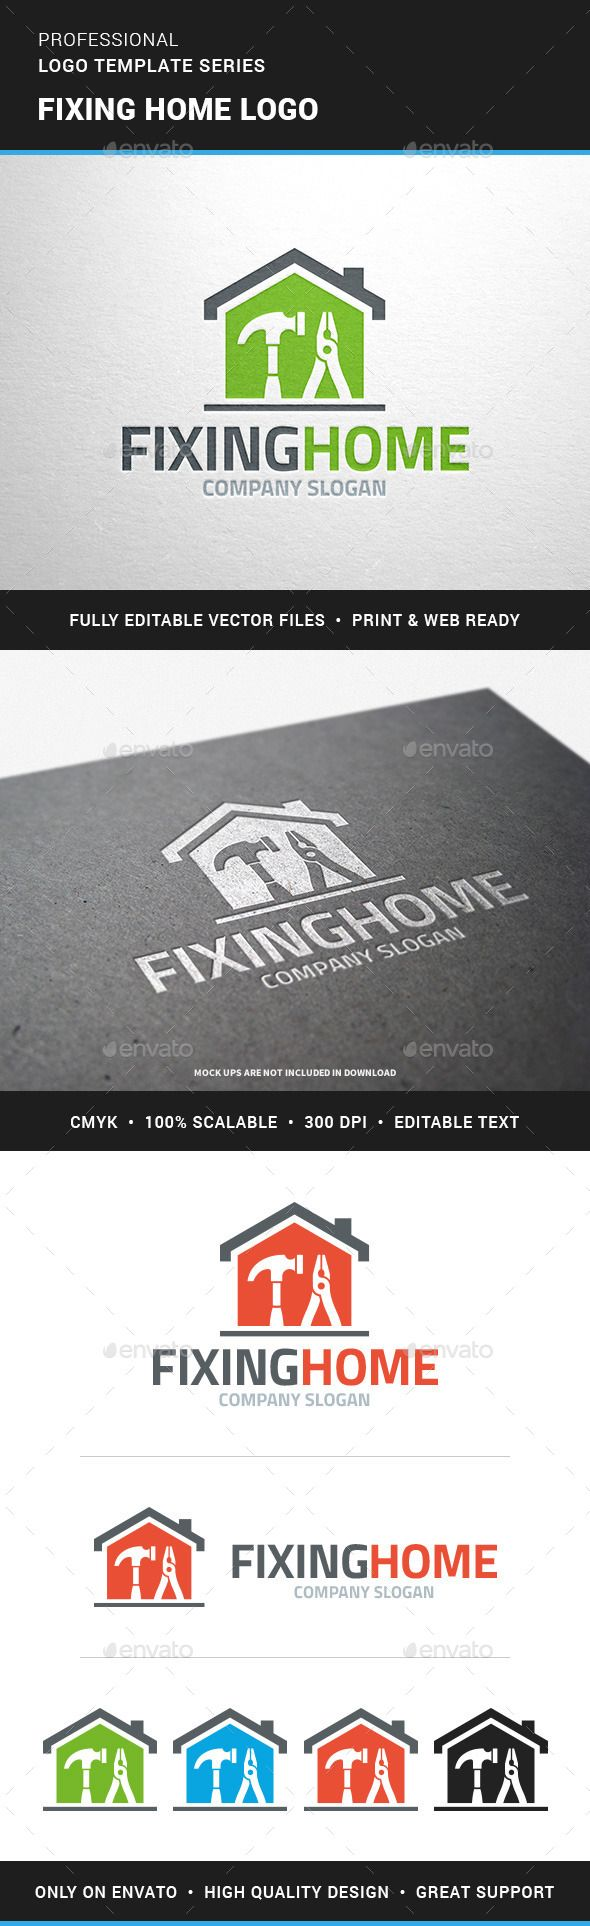 Fixing Home Logo Templatebuild Carpenter Carpentry